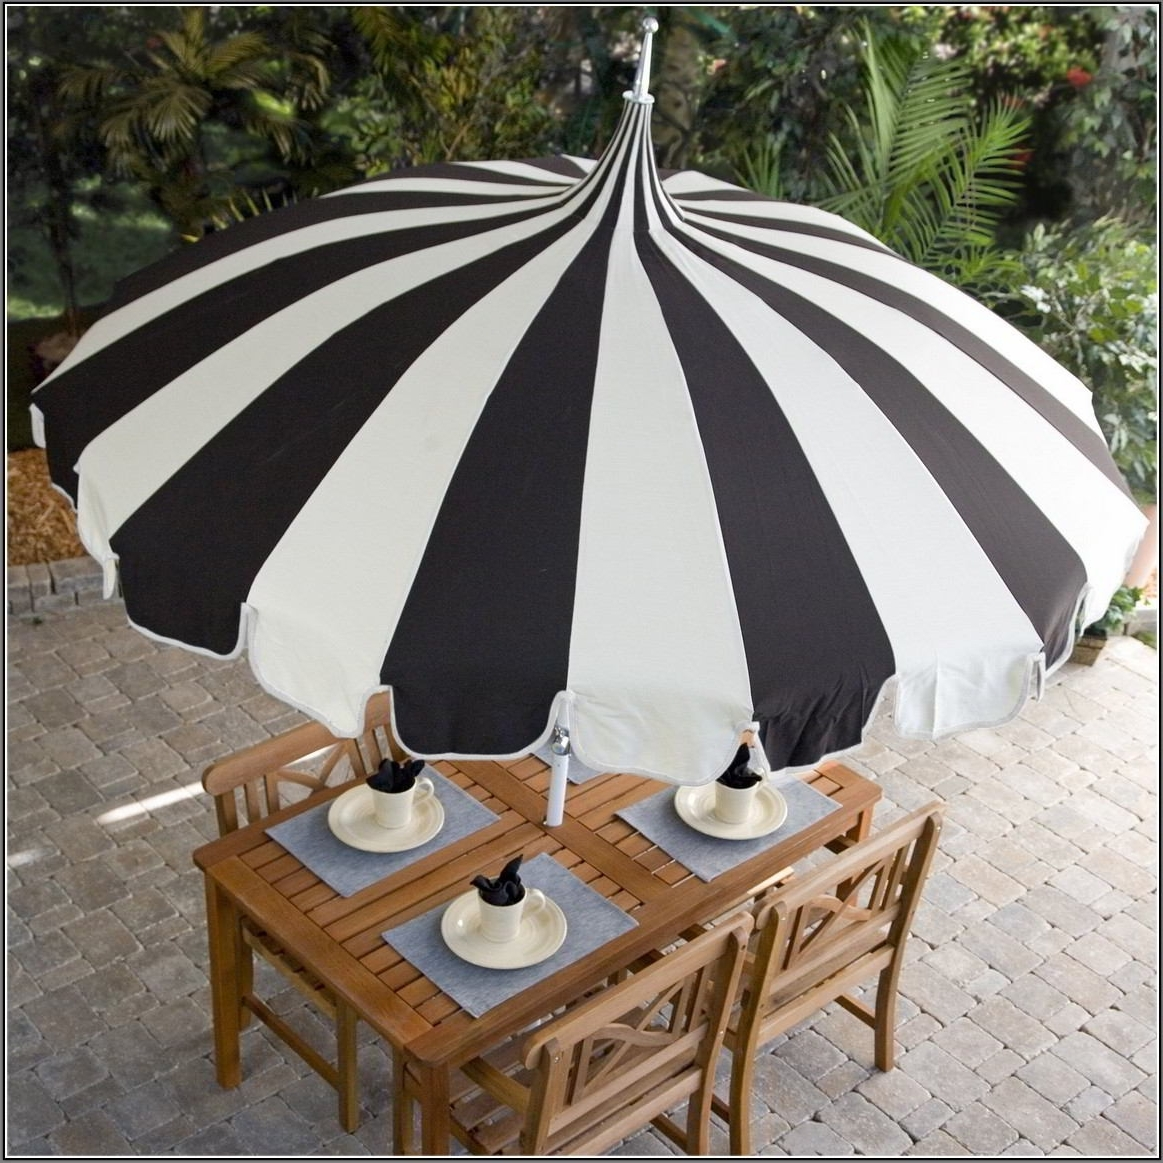 Newest Black And White Garden Patio Umbrellas Decorating (View 7 of 20)